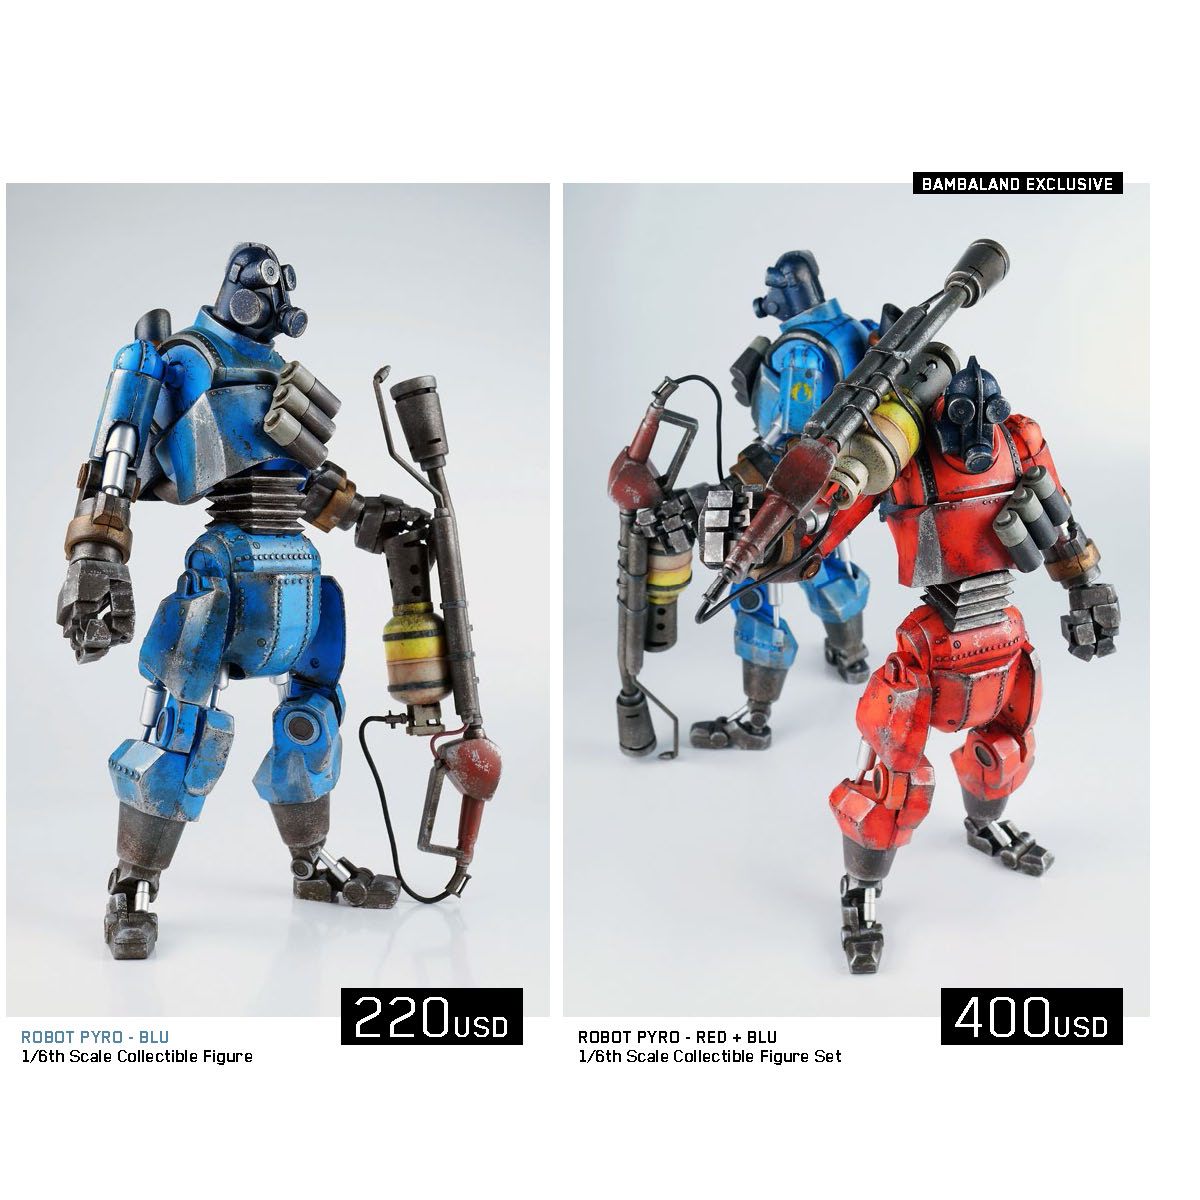 3a Reveals Team Fortress 2 Robot Pyro Figures The Toyark